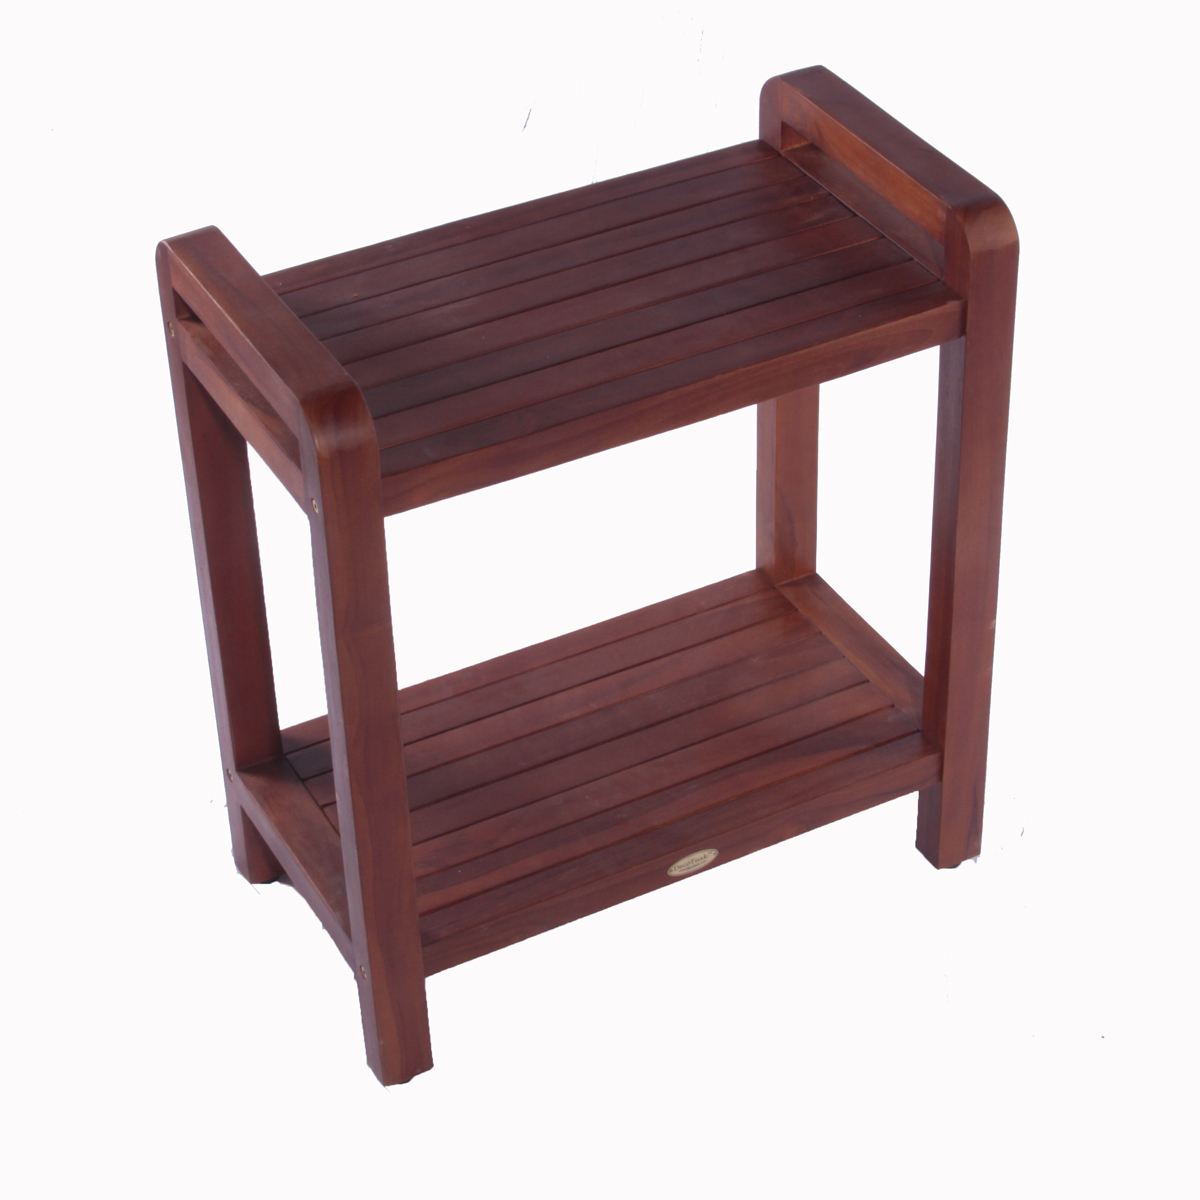 "Decoteak DT109 Classic 24"" Extended Height Ergonomic Teak Shower Stool with Liftaid Arms and Shelf"